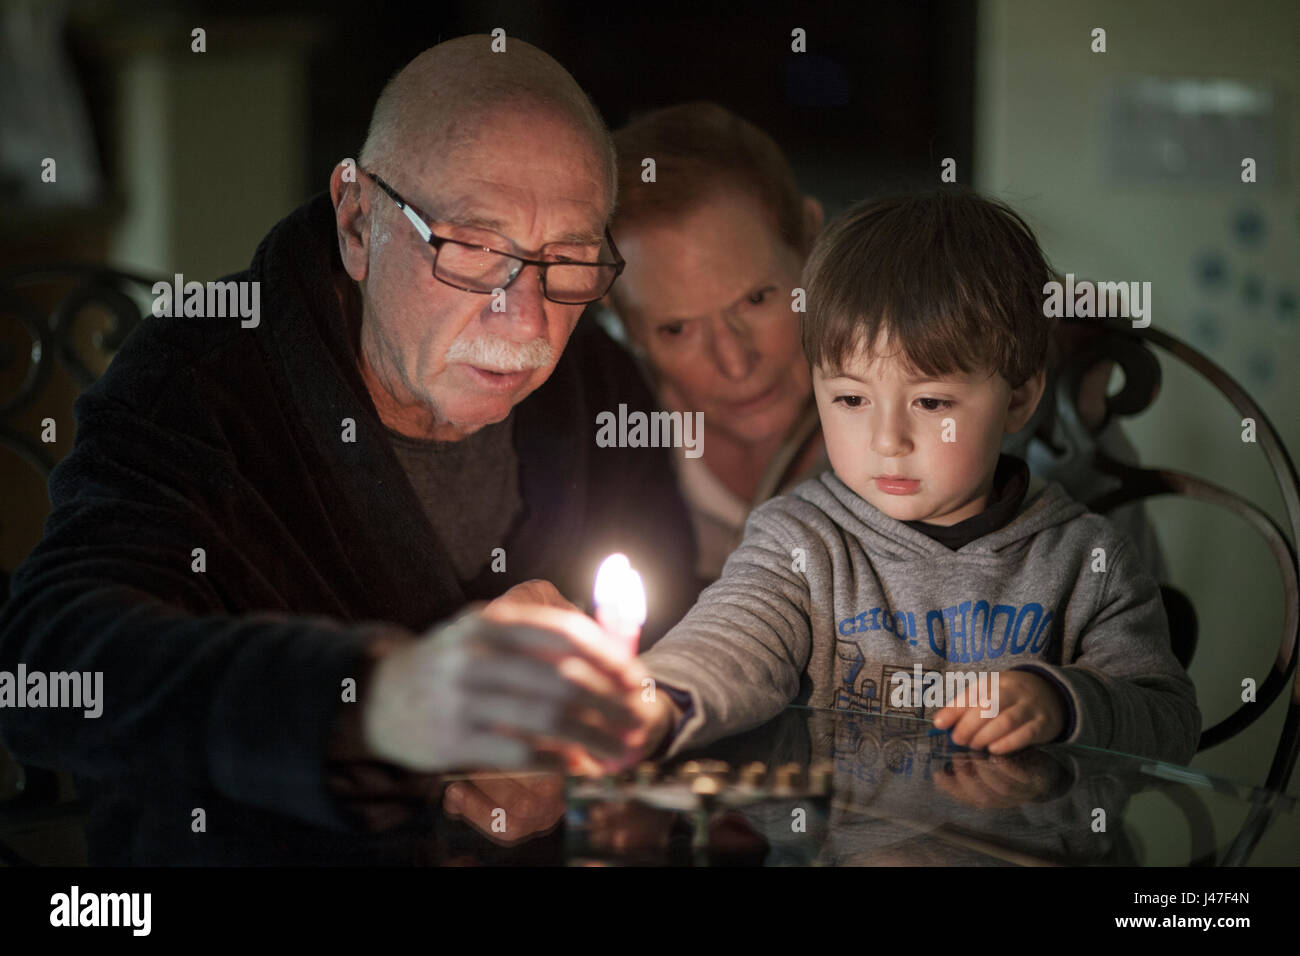 Jewish family of grandparents and their grandson lighting Hanukkah Candles in a menorah for the holdiays - Stock Image